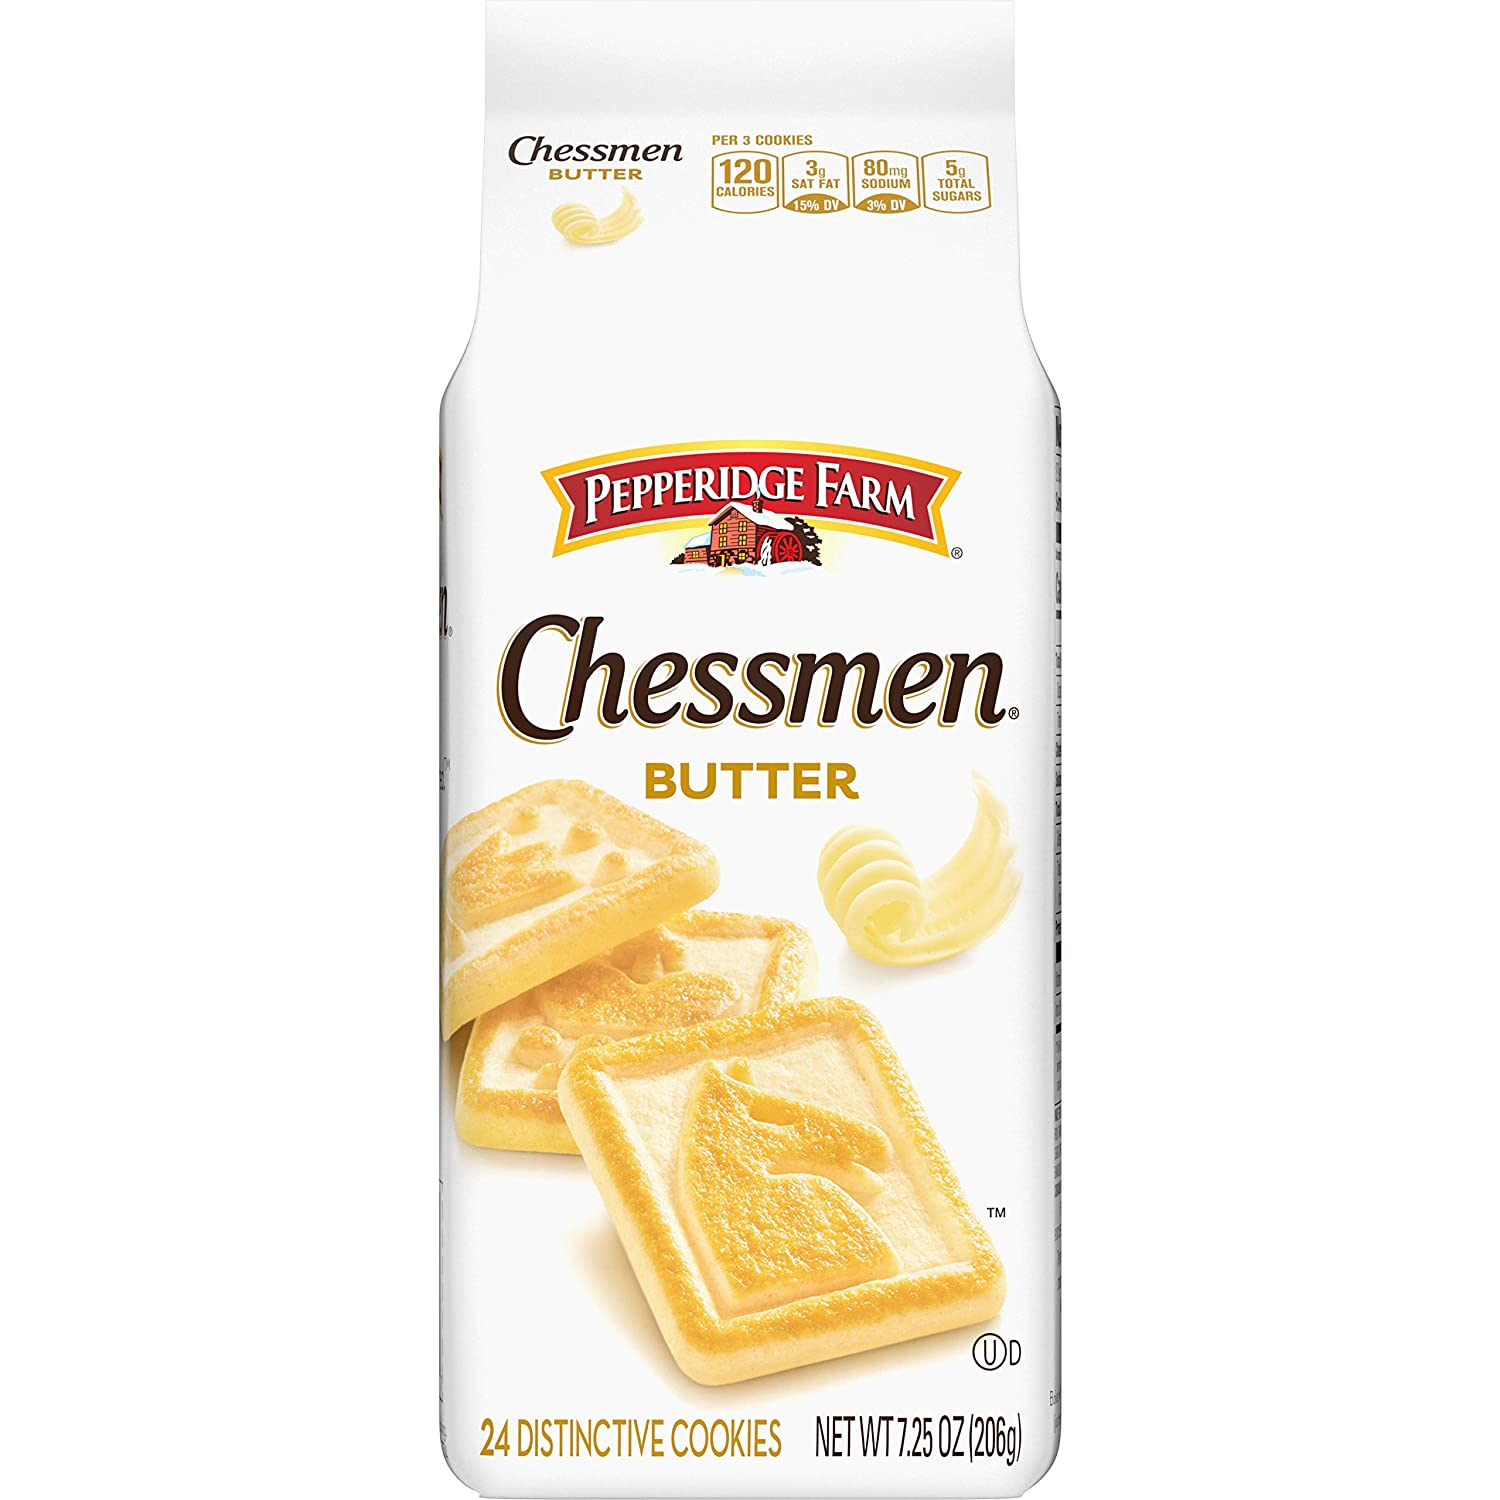 Pepperidge Farm Chessmen Butter Cookies 7 25 Oz Bag Amazon Com Grocery Gourmet Food